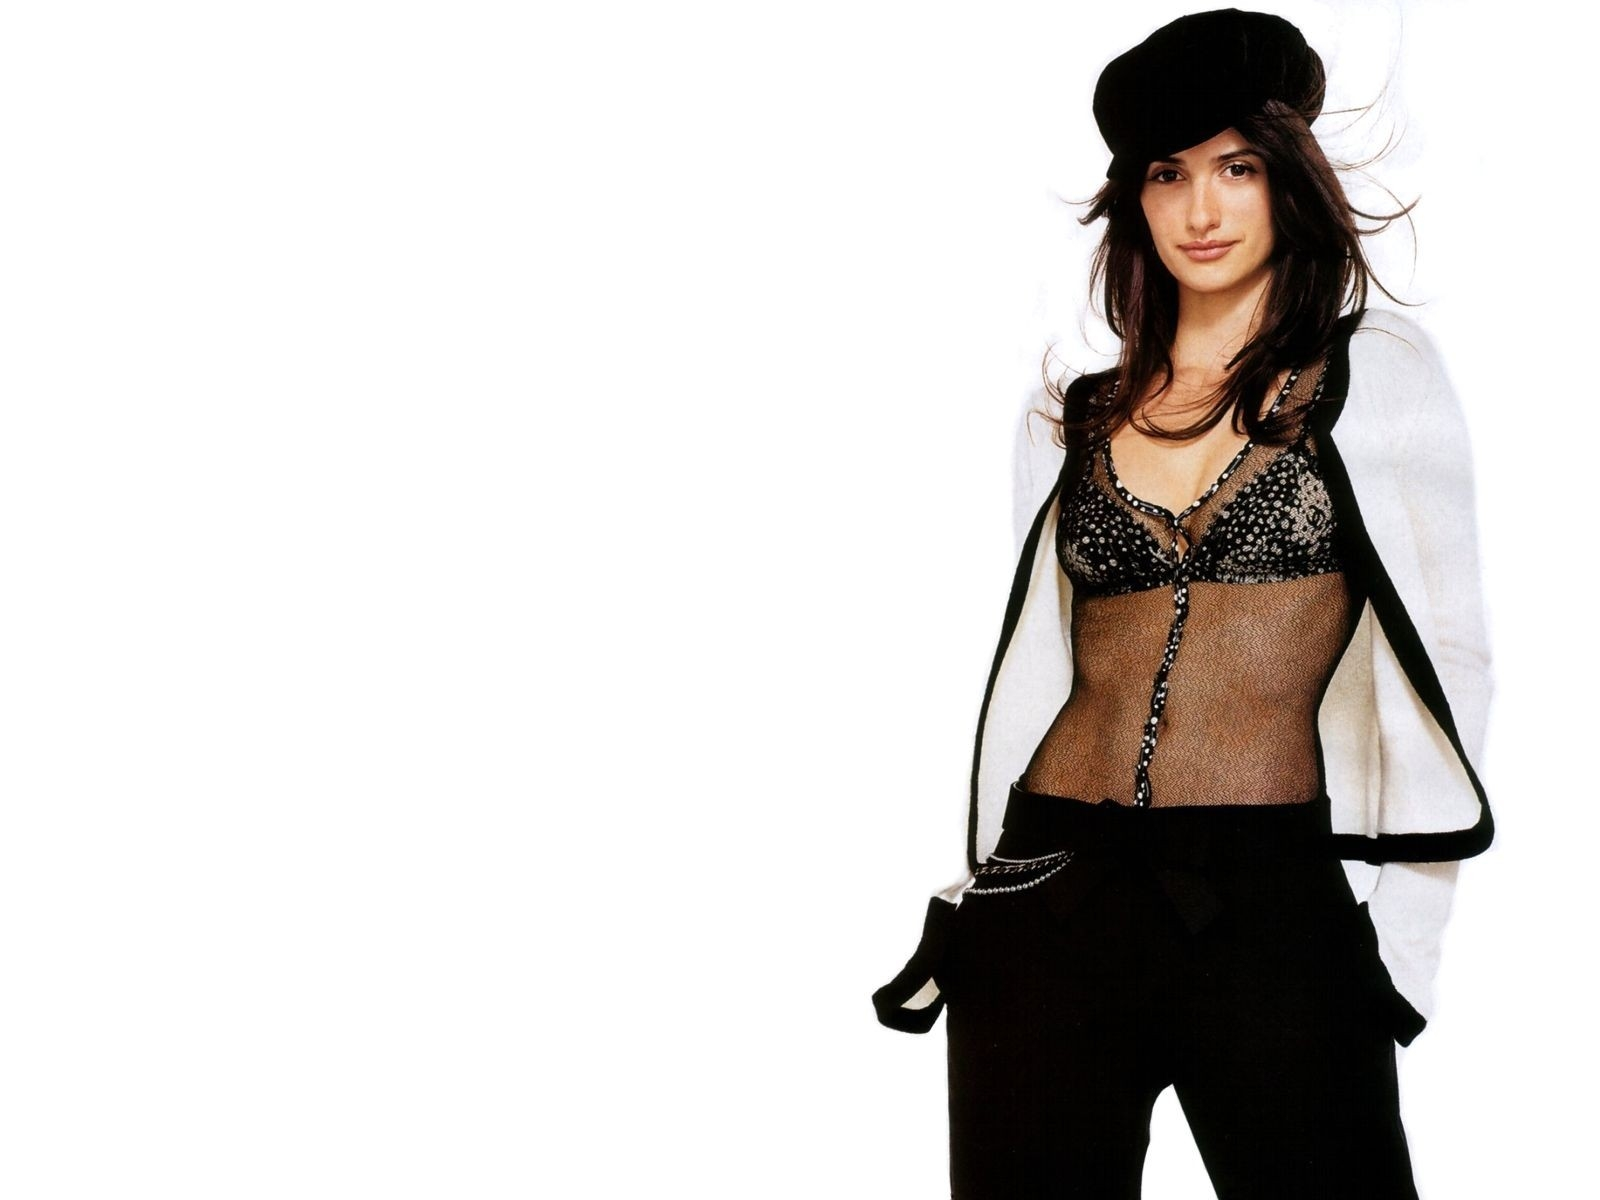 Wallpaper di Penelope Cruz in versione bad girl